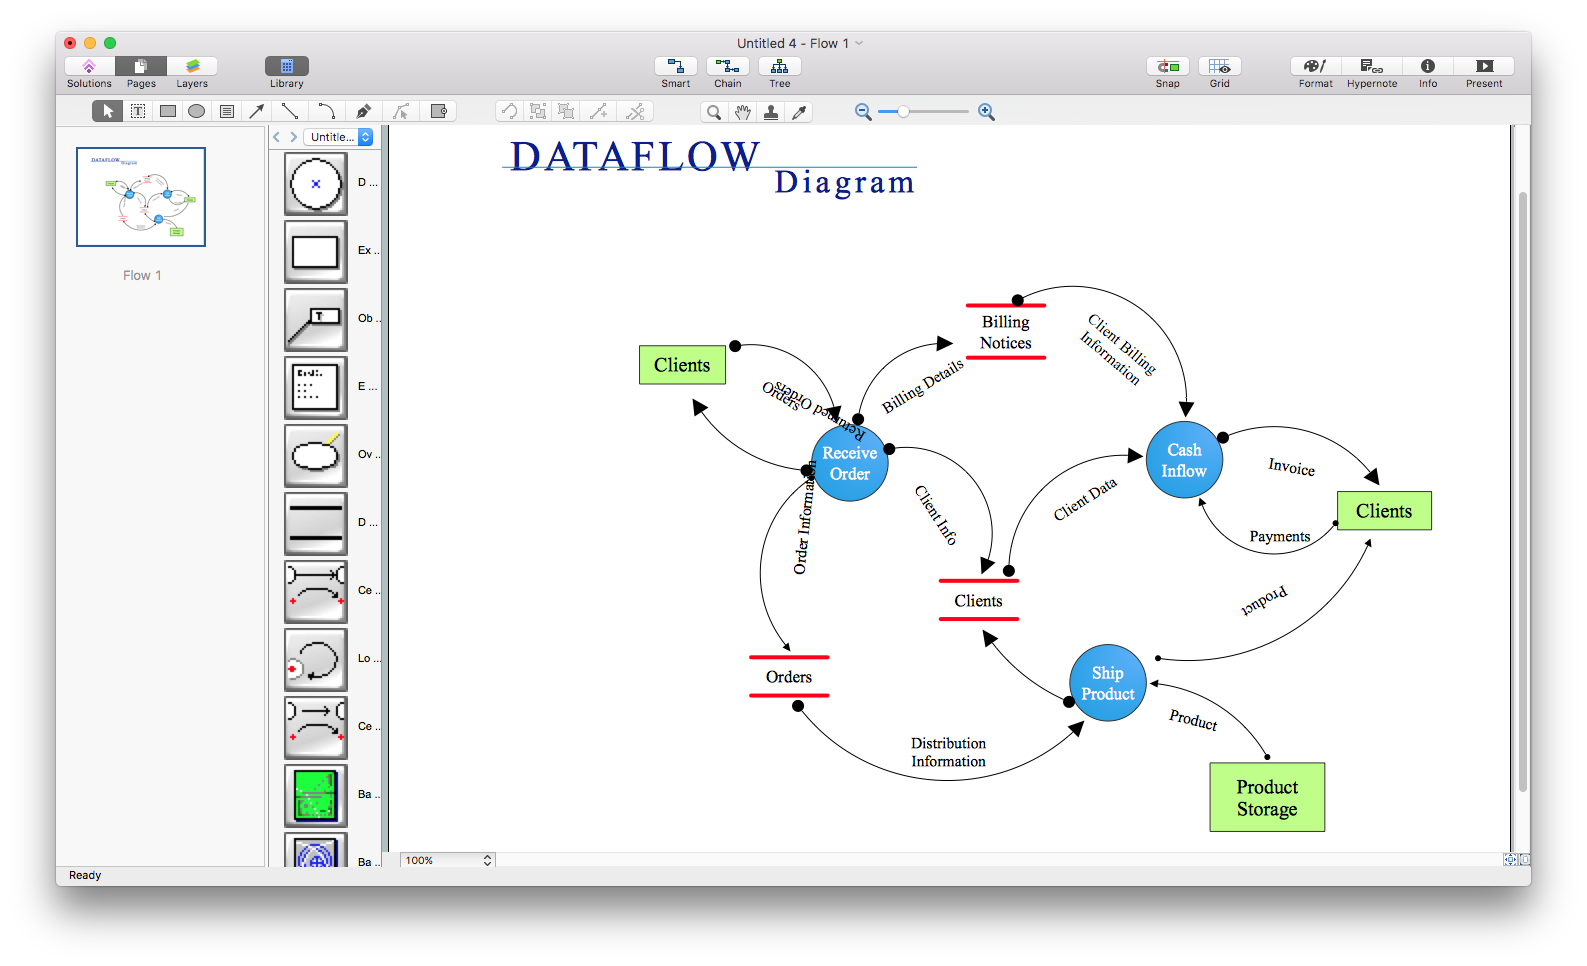 business flowchart converted from ms visio vdx format to conceptdraw pro format - Open Visio Document Online